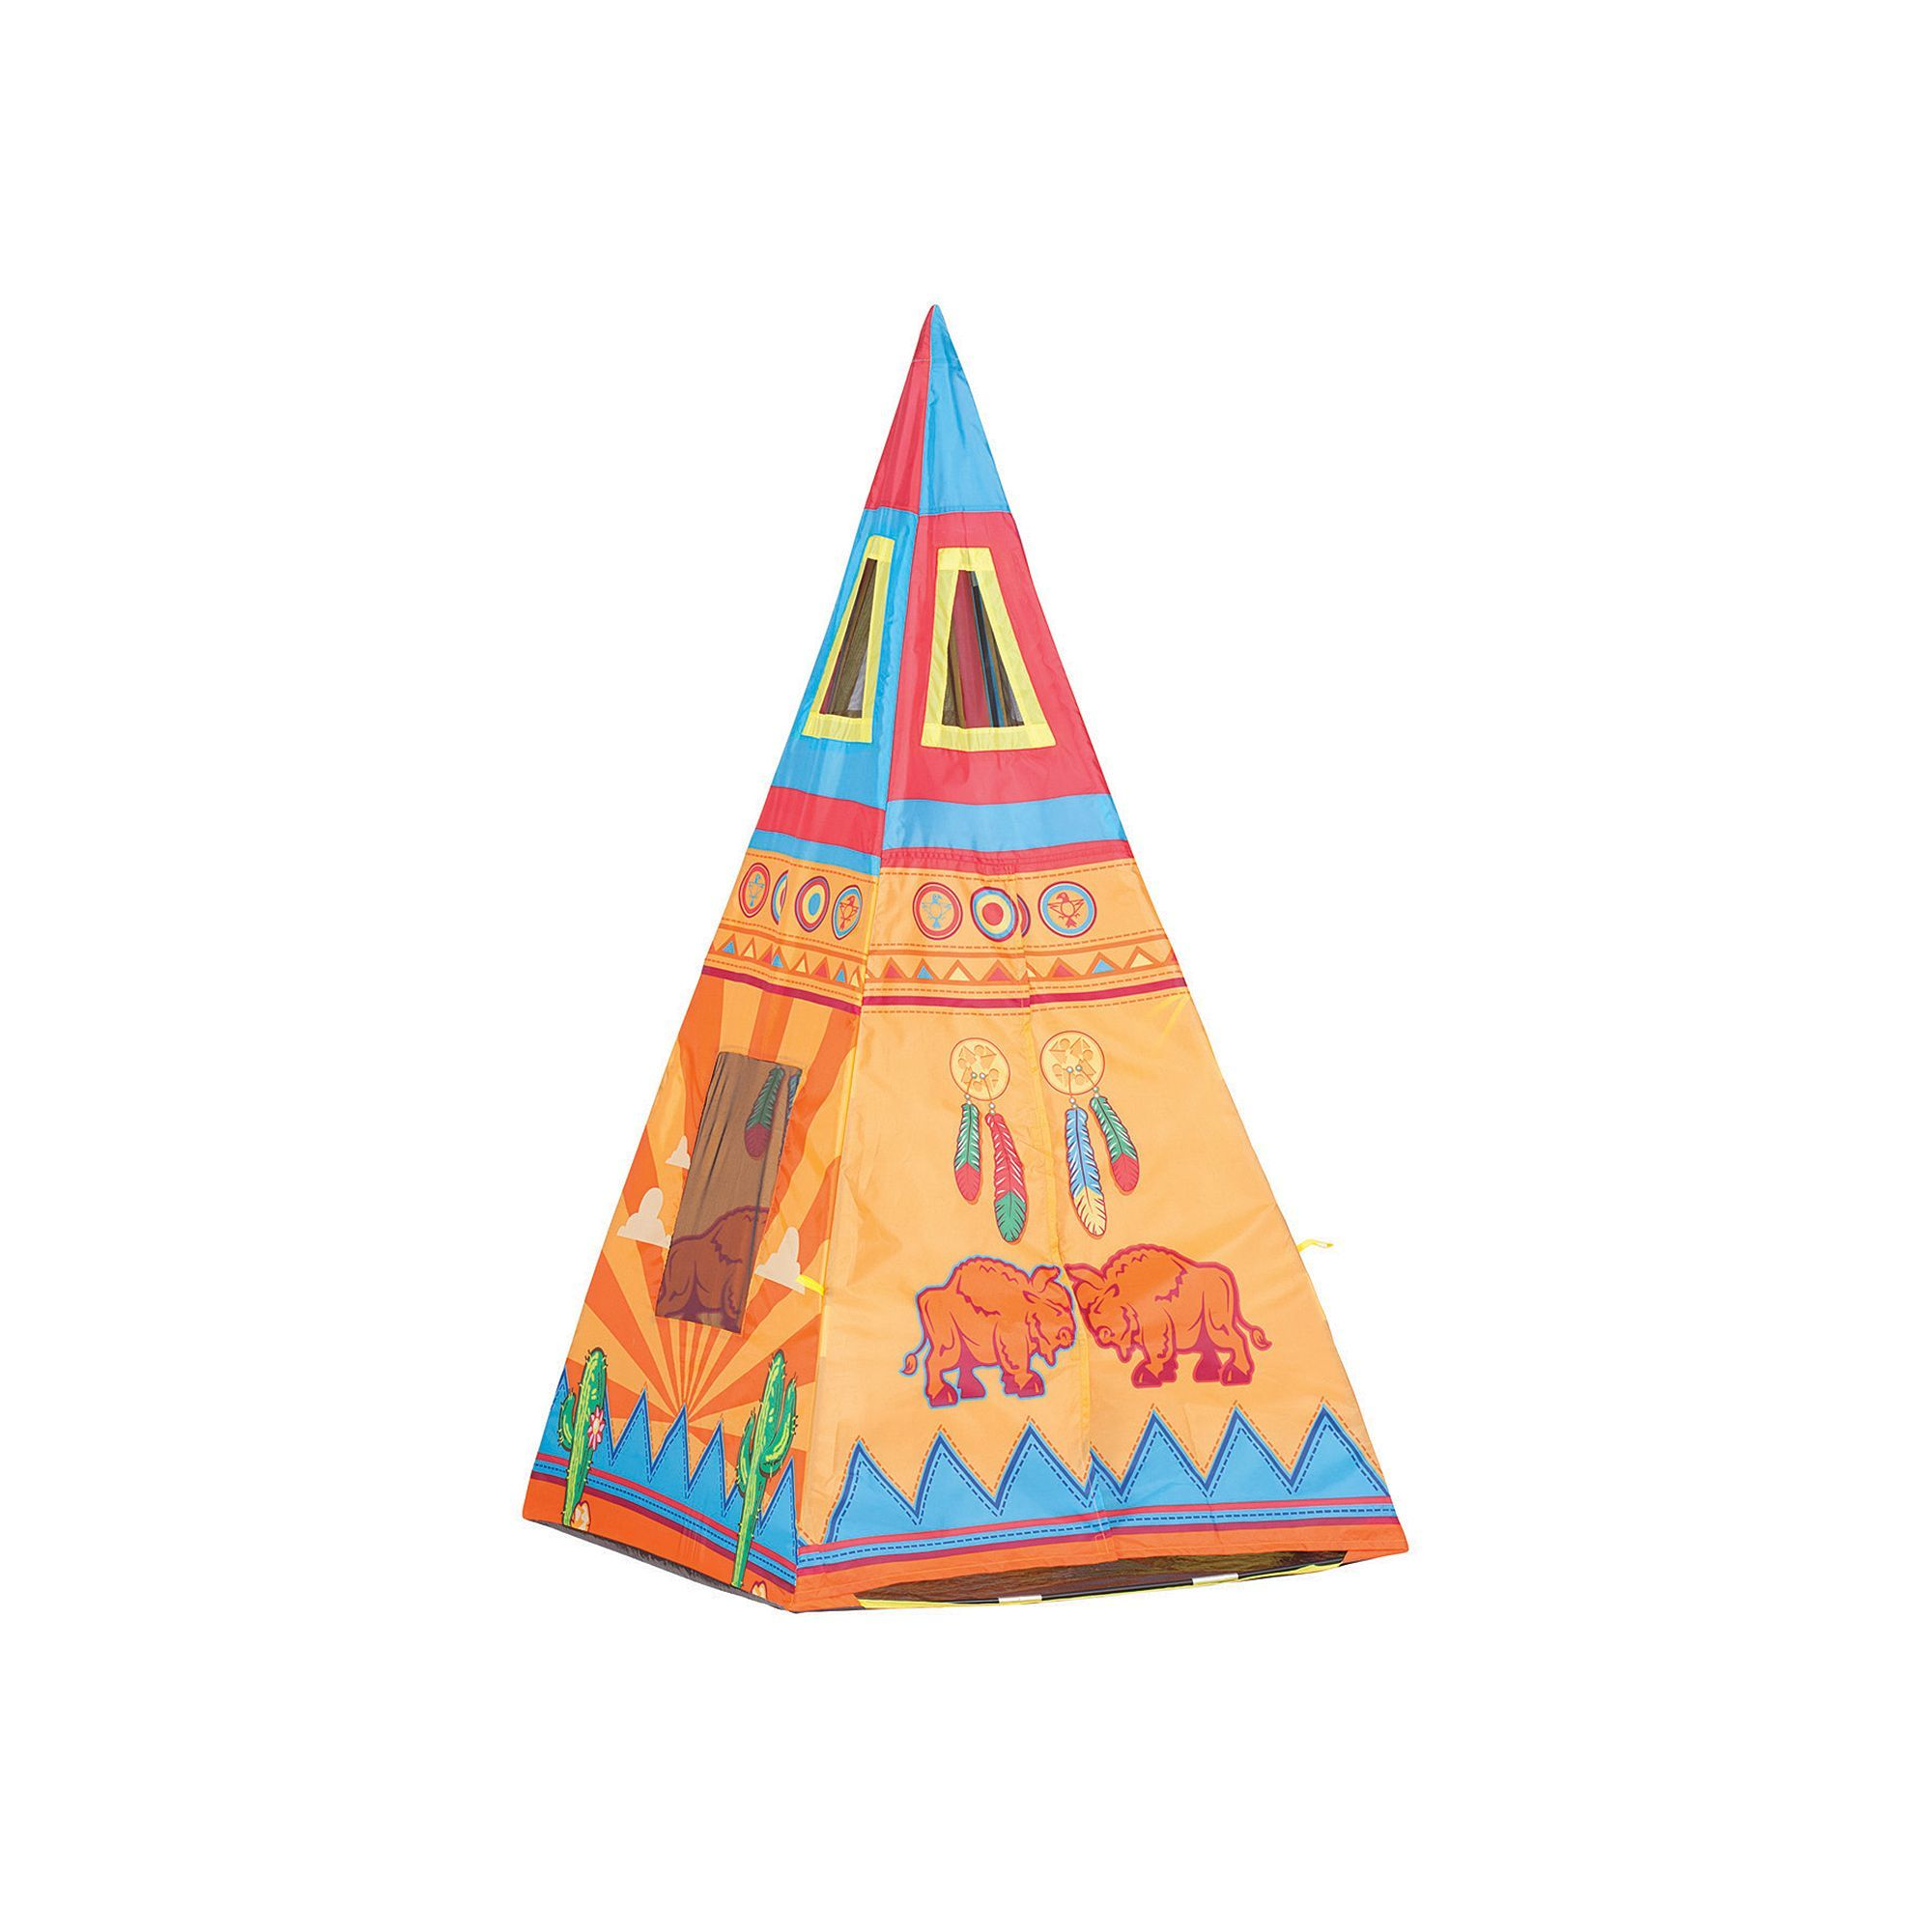 Pacific Play Tents Santa Fe Teepee Tent Multicolor Durable  sc 1 st  Pinterest & Pacific Play Tents Santa Fe Teepee Tent Multicolor | Tent Plays ...